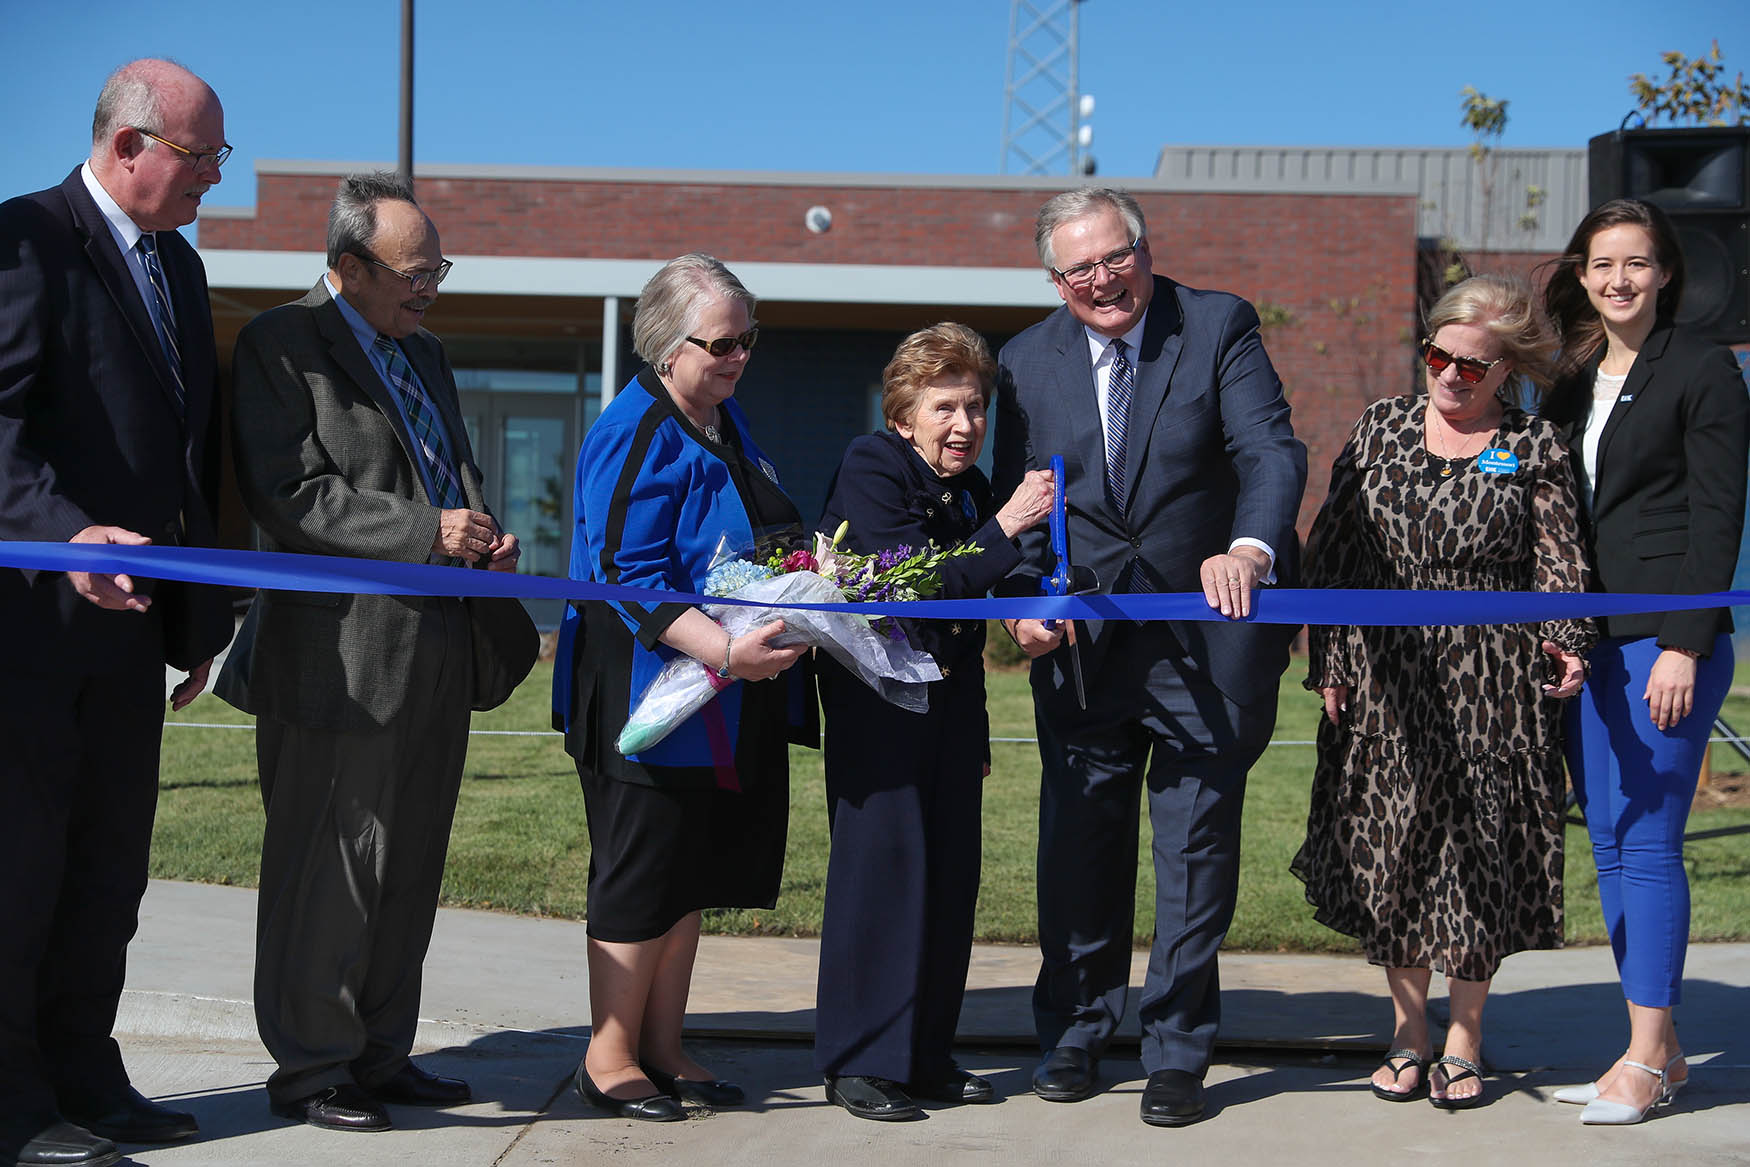 UNK celebrated its new LaVonne Kopecky Plambeck Early Childhood Education Center with a ribbon-cutting event earlier this month. On Friday, community members and parents can check out the $7.8 million center during a public open house. (Photo by Corbey R. Dorsey, UNK Communications)